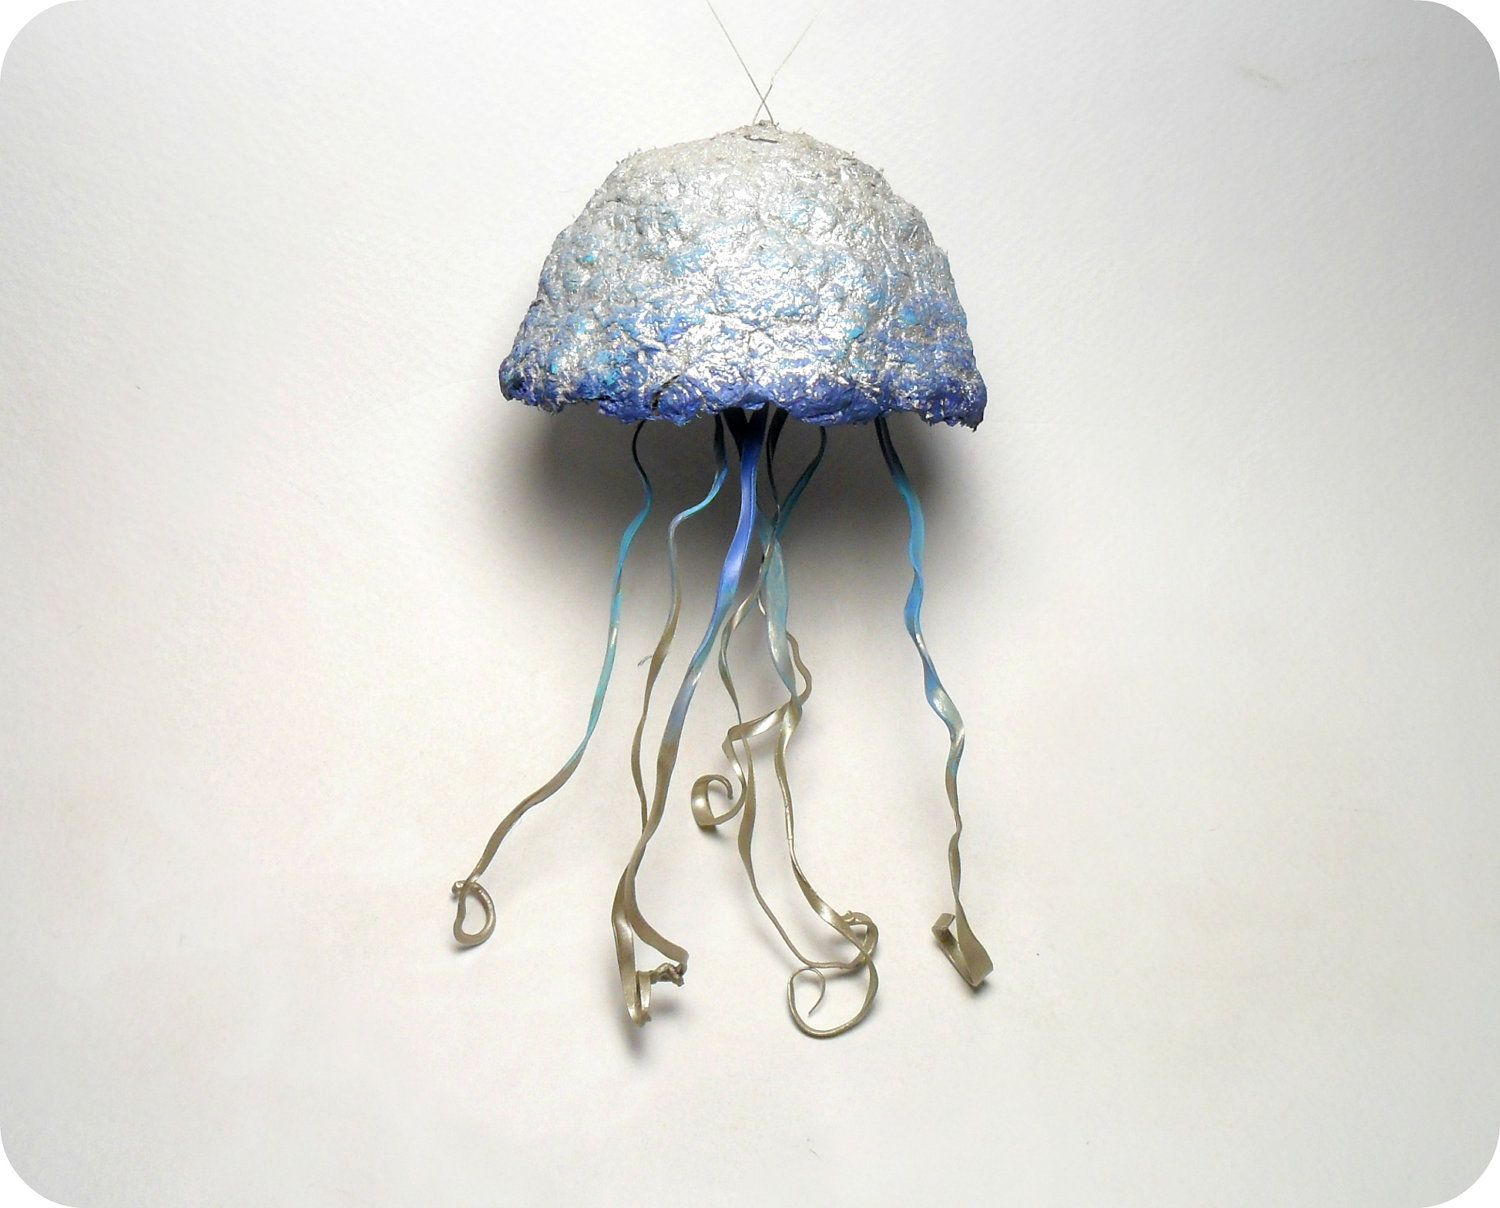 Sculture Mobili ~ Jellyfish hanging sculpture mobile recycled by laurelandlime $27.00